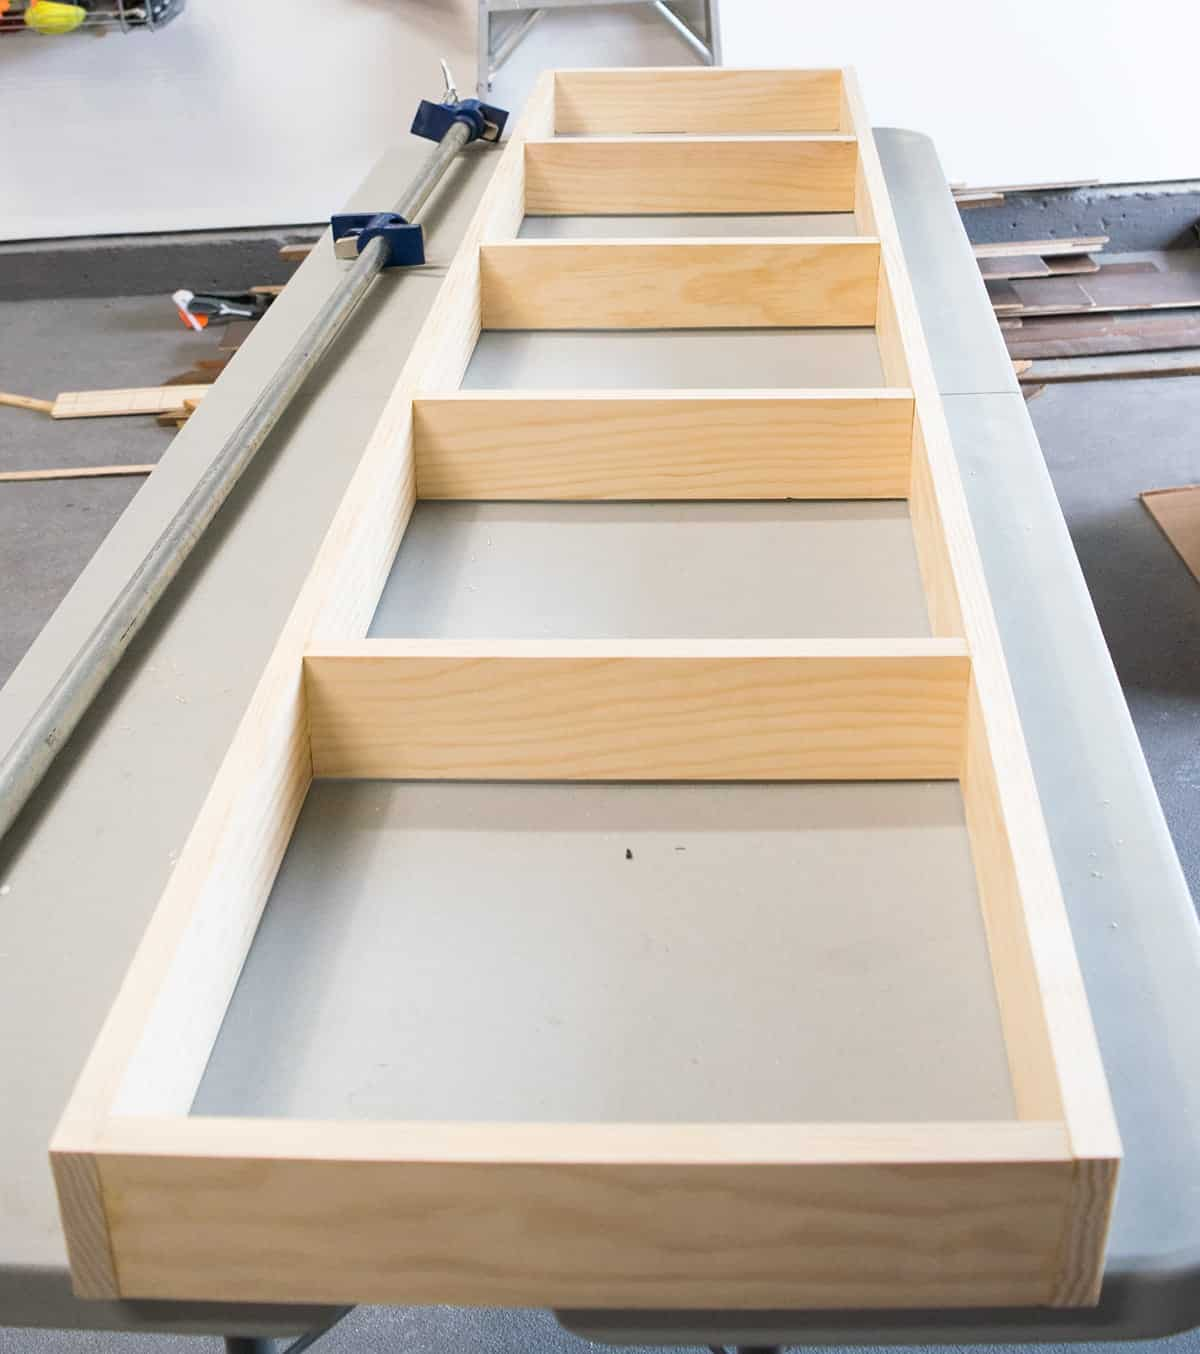 Frame for built-in bookshelf laying flat on table